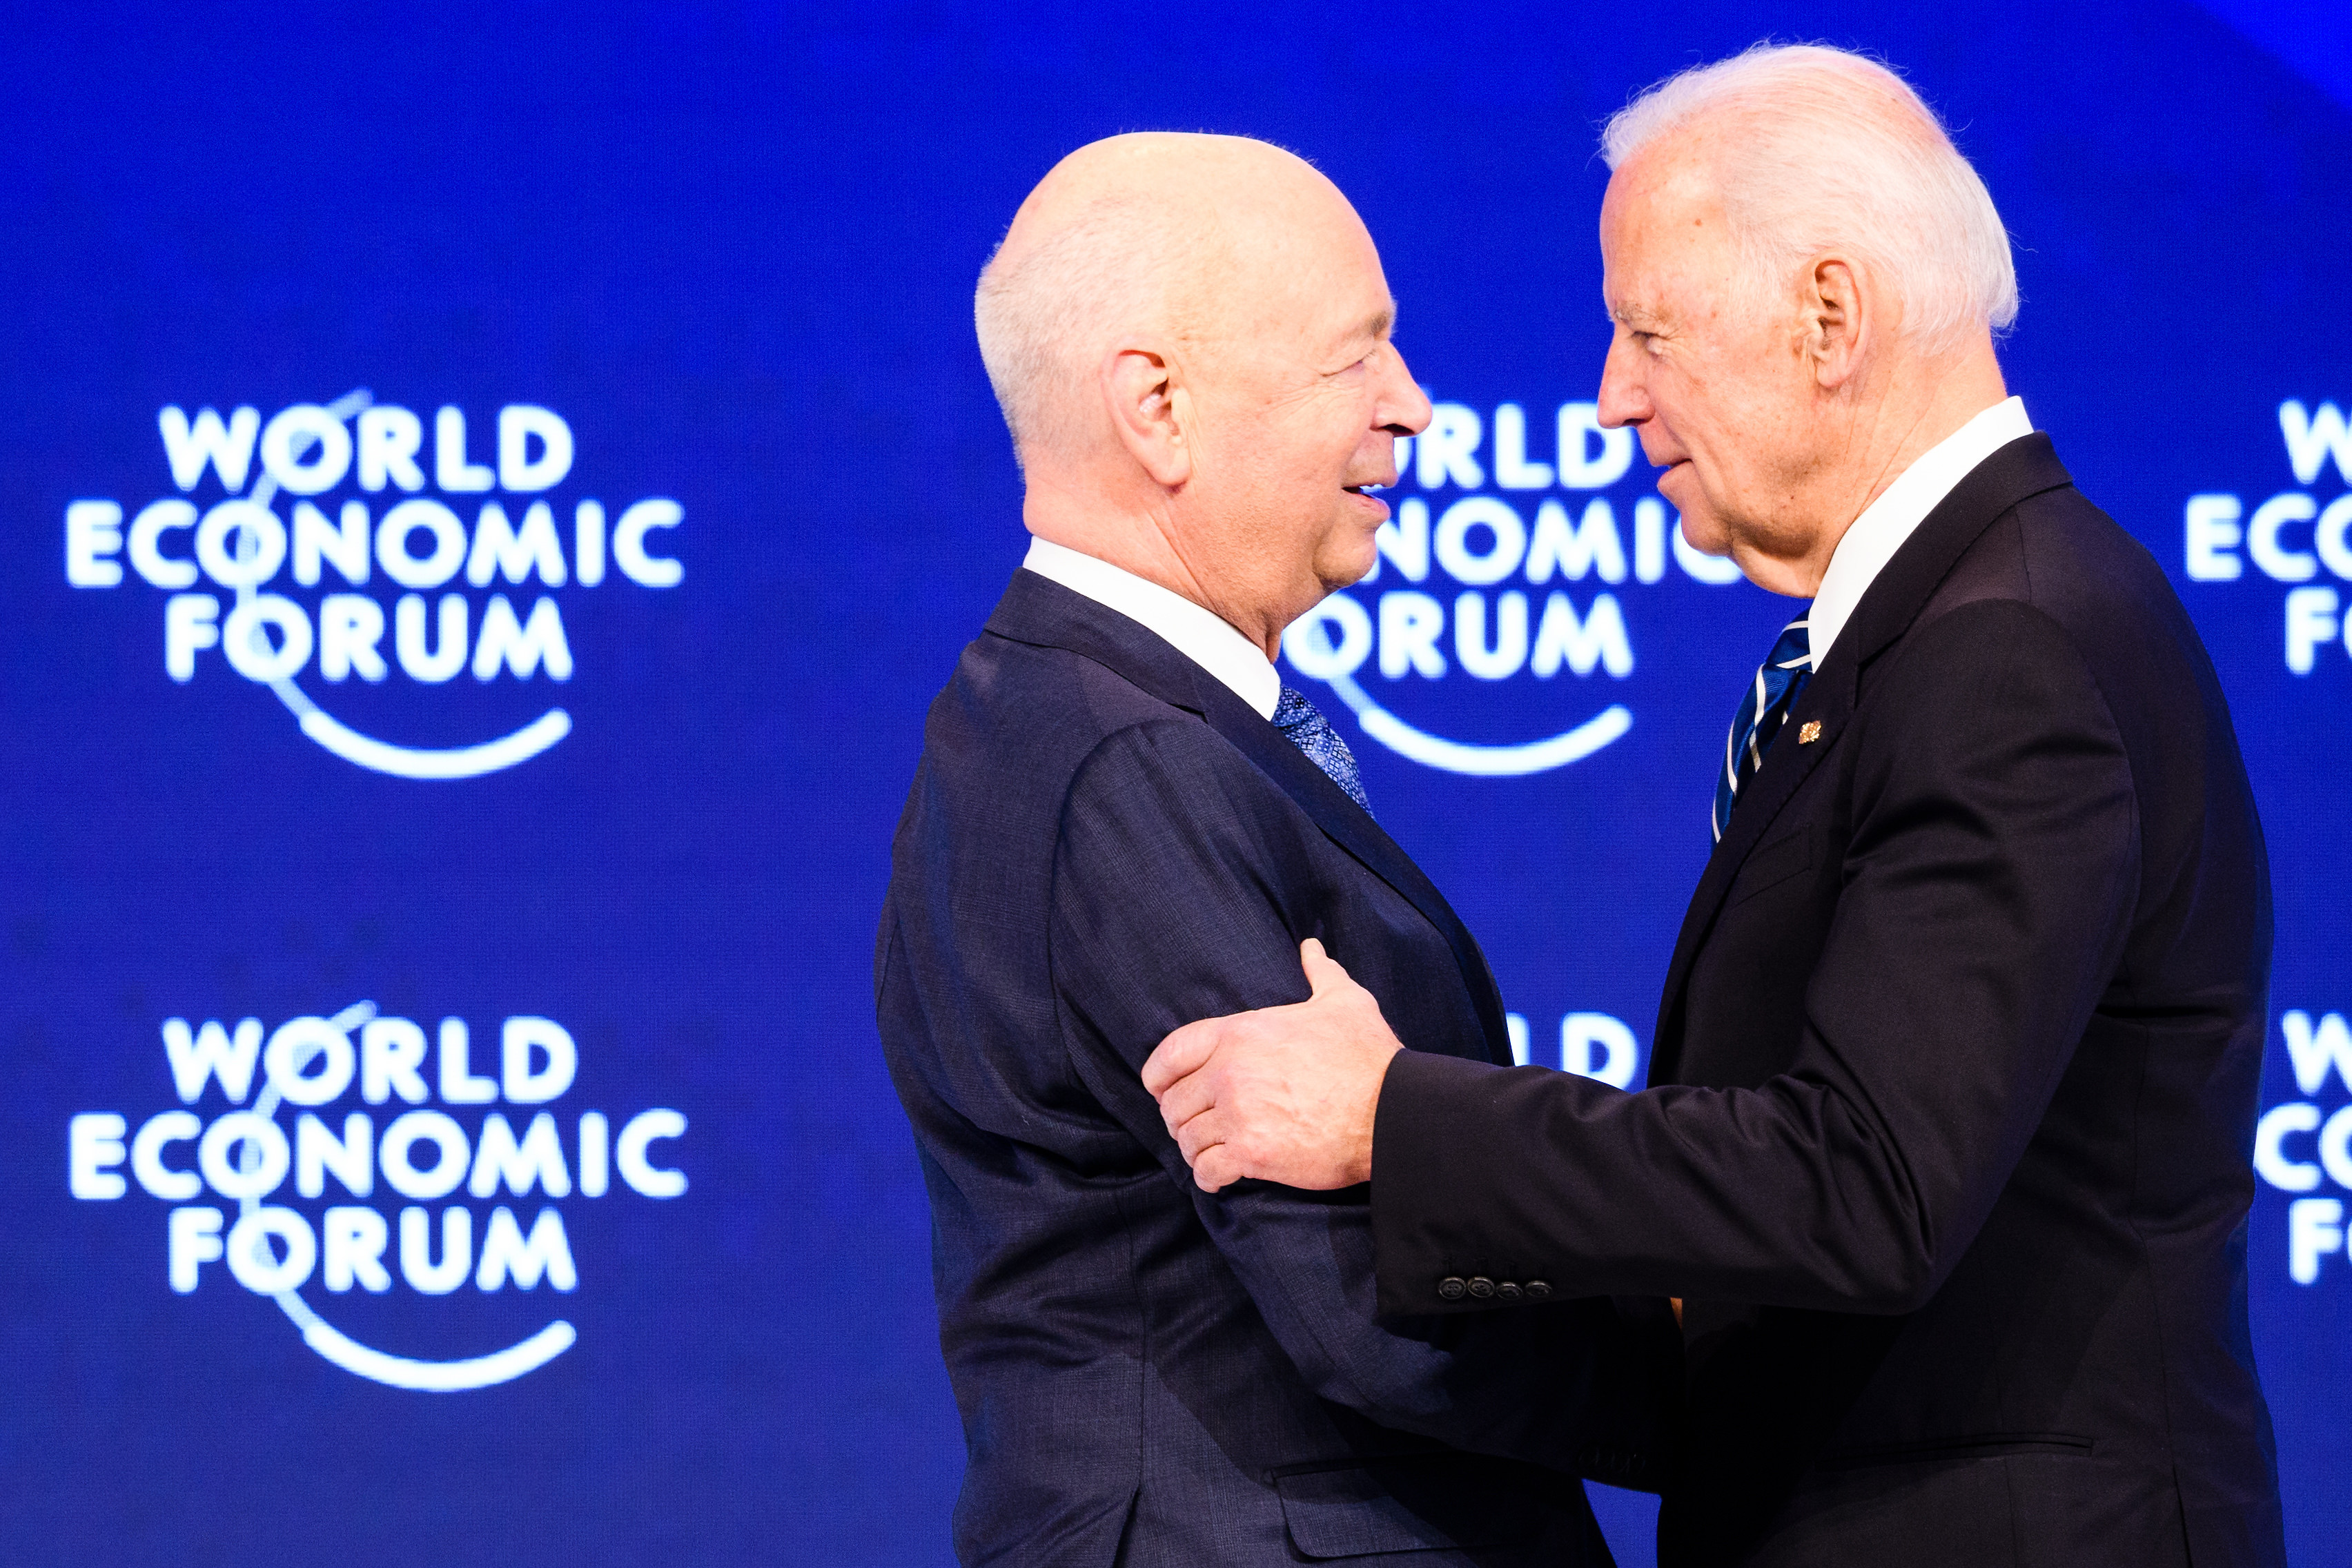 Klaus Schwab, Founder and Executive Chairman, World Economic Forum; Joseph R. Biden Jr, Vice-President of the United States of America at the Annual Meeting 2017 of the World Economic Forum in Davos, January 18, 2017.Copyright by World Economic Forum / Manuel Lopez